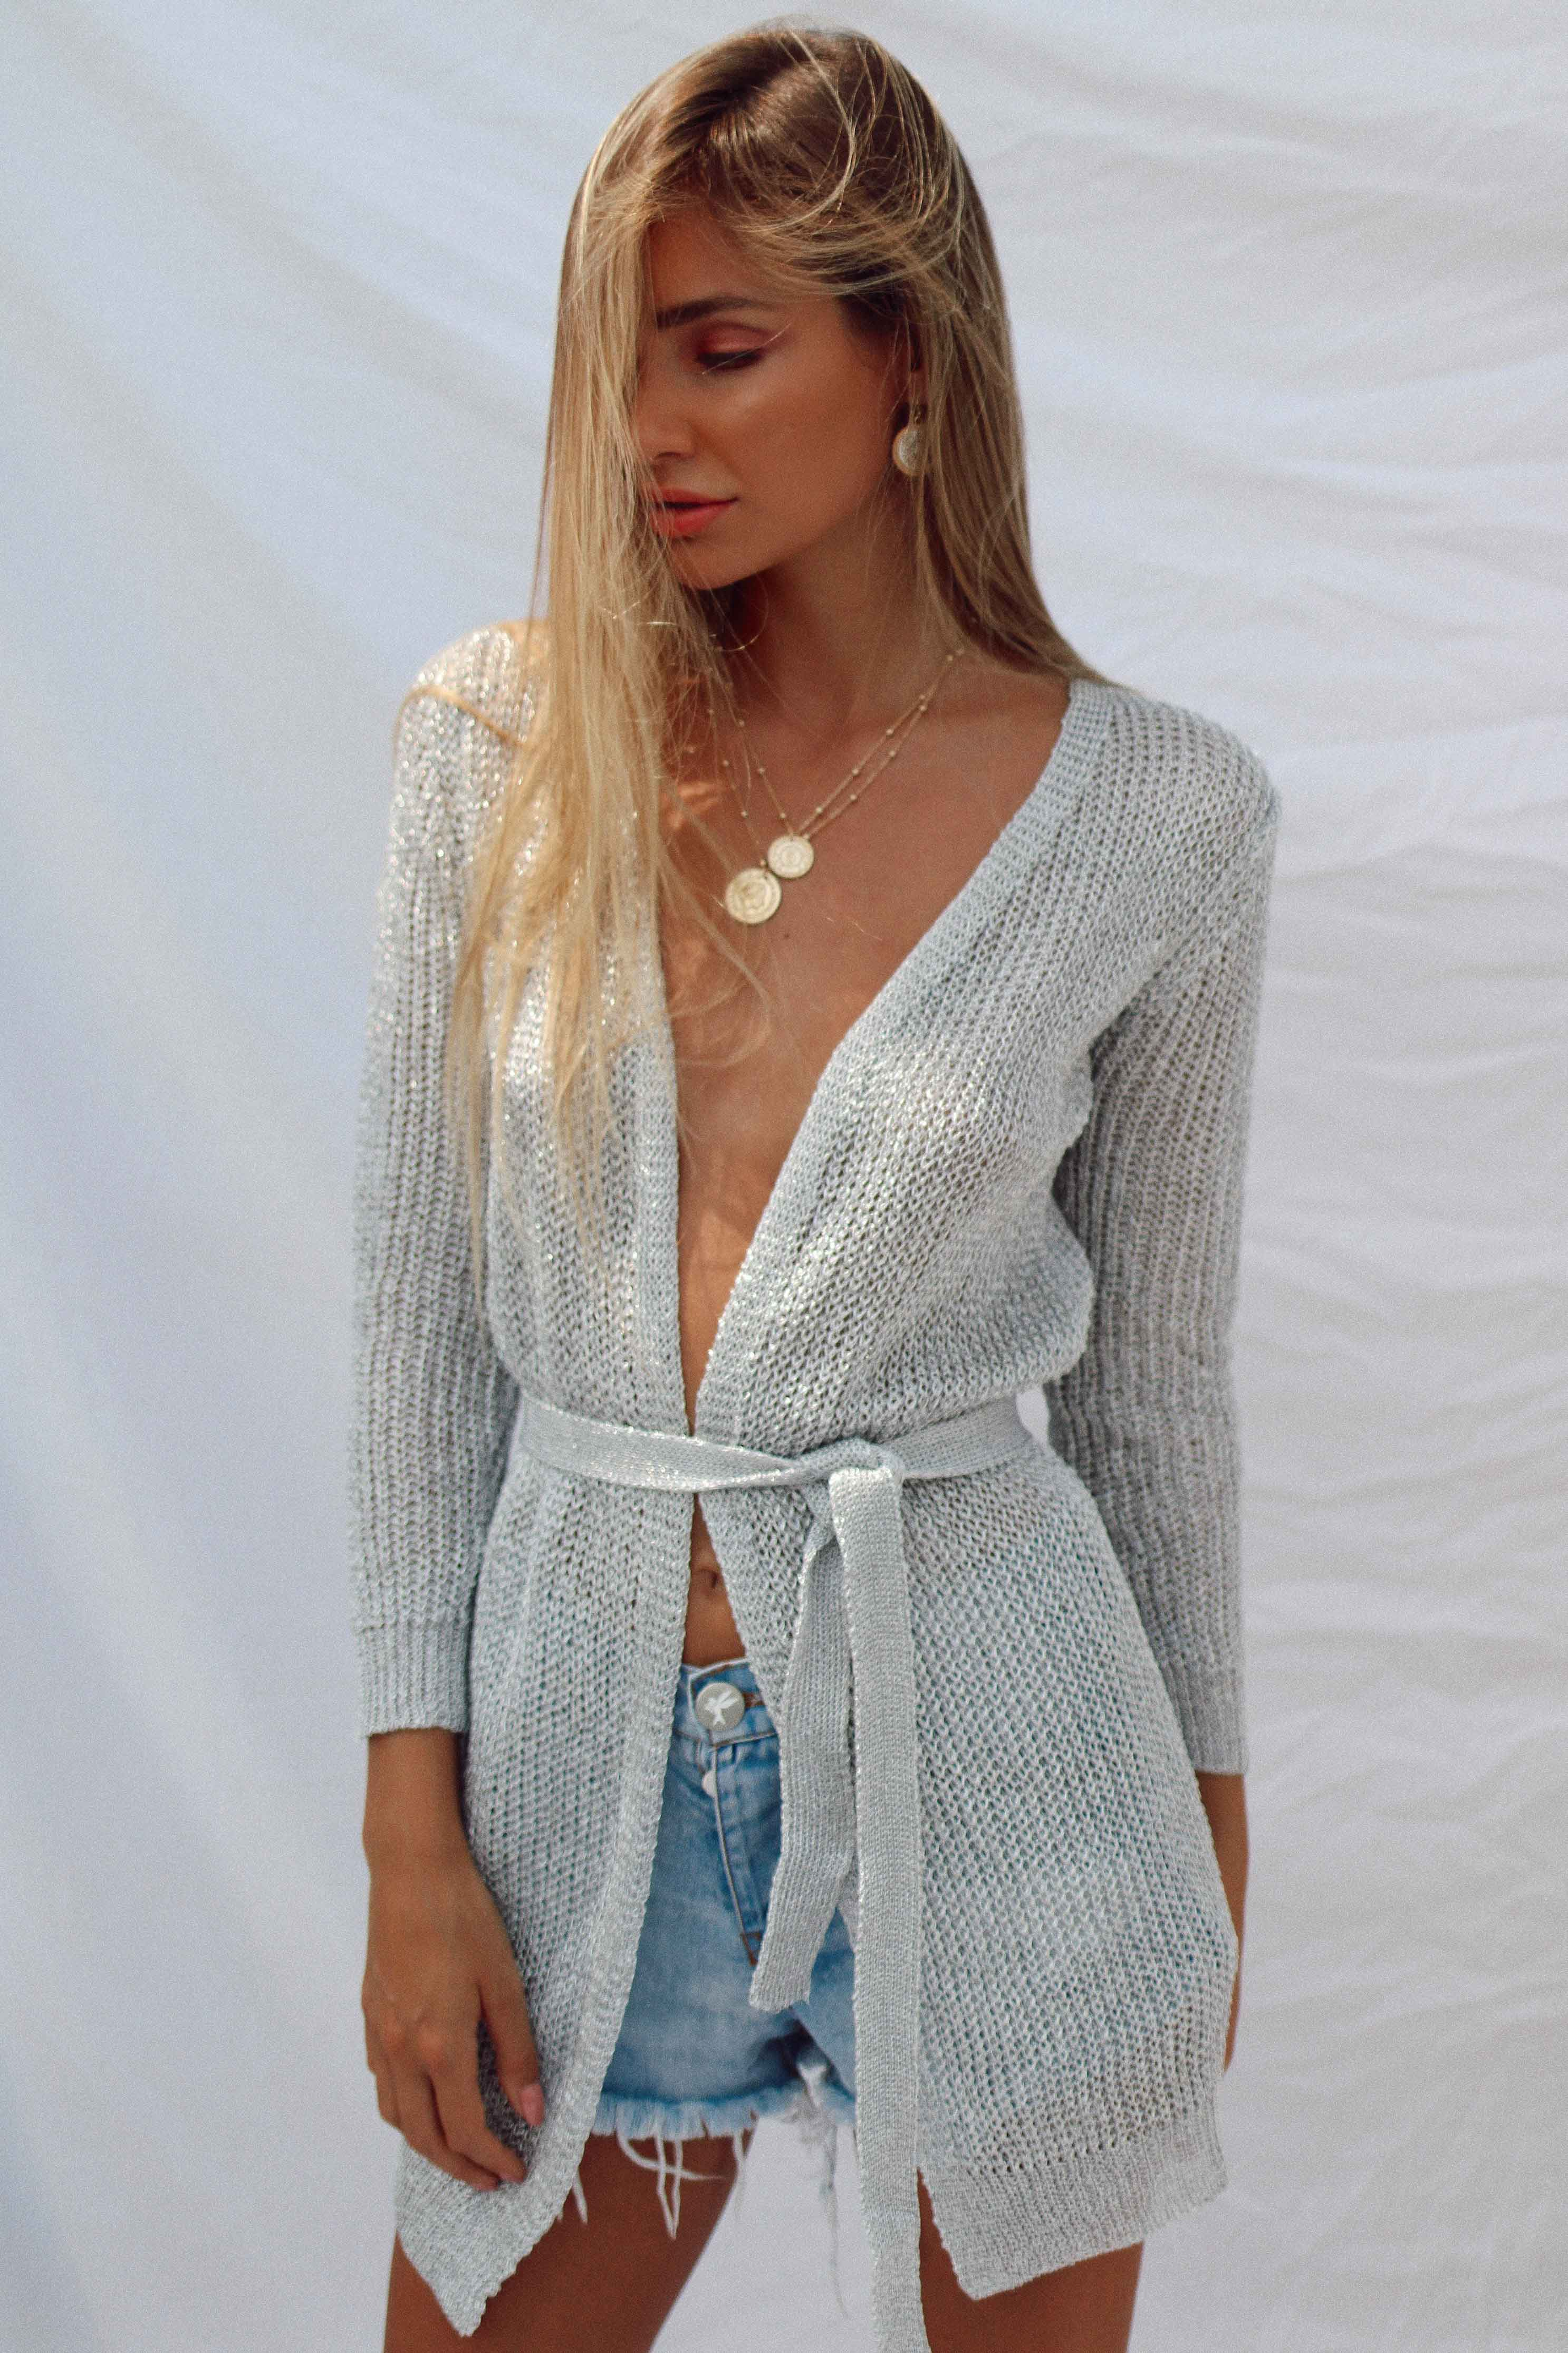 XIMENA TOP IN SILVER - Chic Le Frique